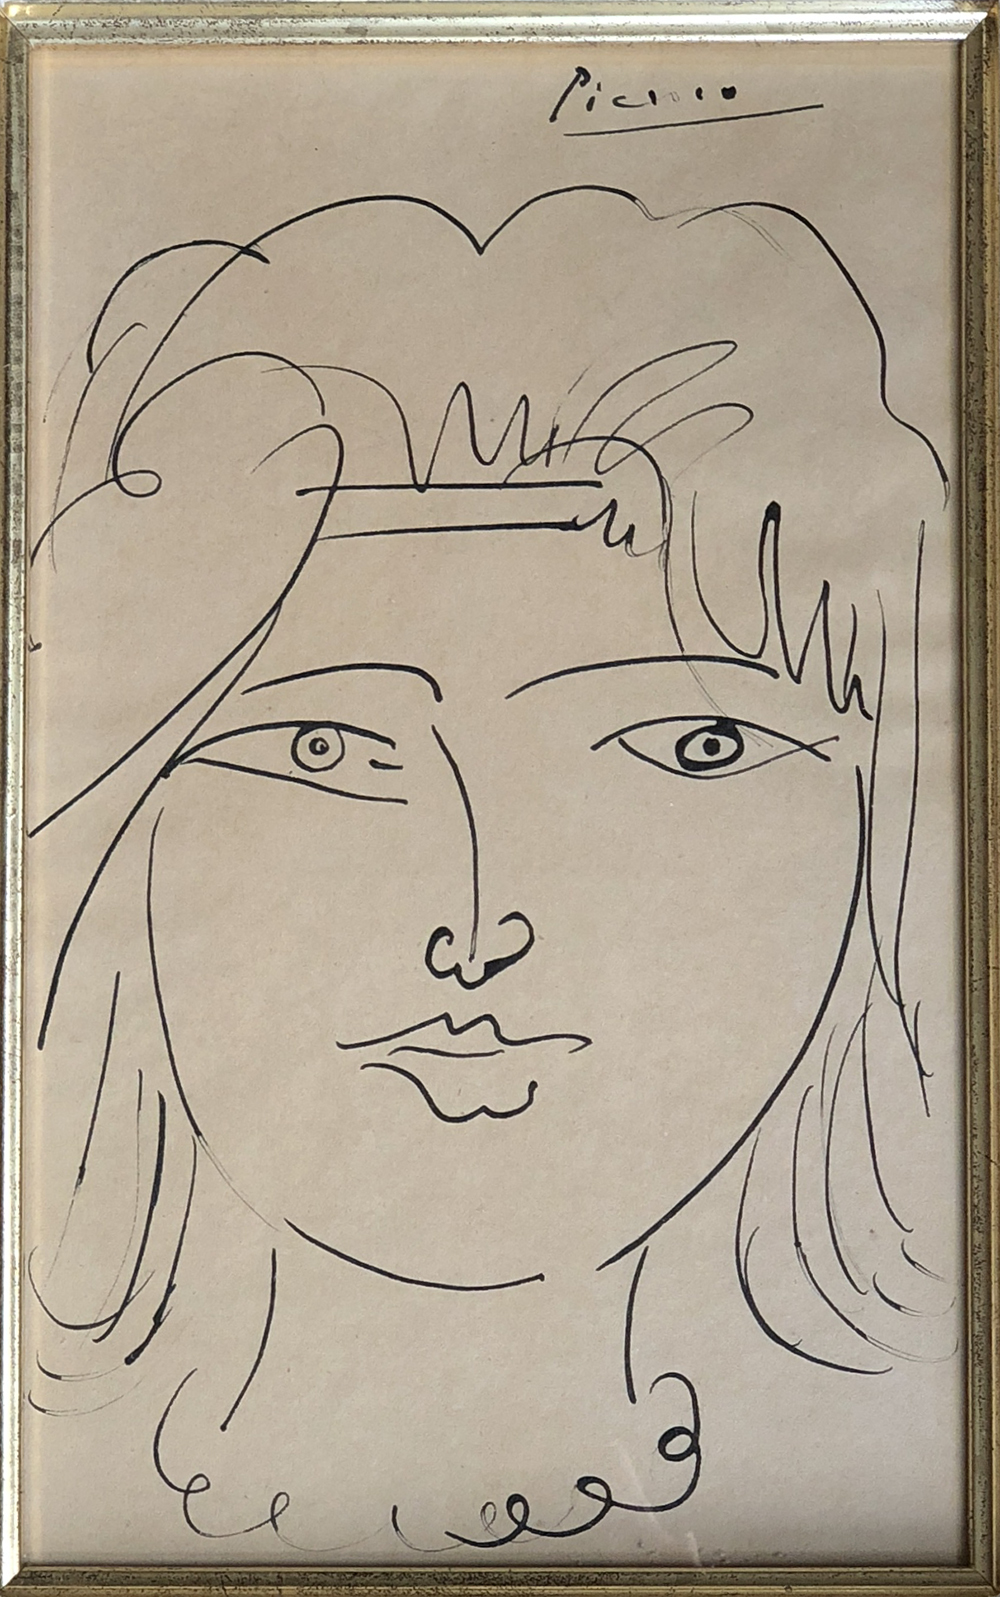 PABLO PICASSO  Tête de Jeune Femme (Head of a Young Woman) (c.1950)  27 x 16.8 cm / 10.6 x 6.6 inch  Original drawing in ballpoint pen with ink on paper.